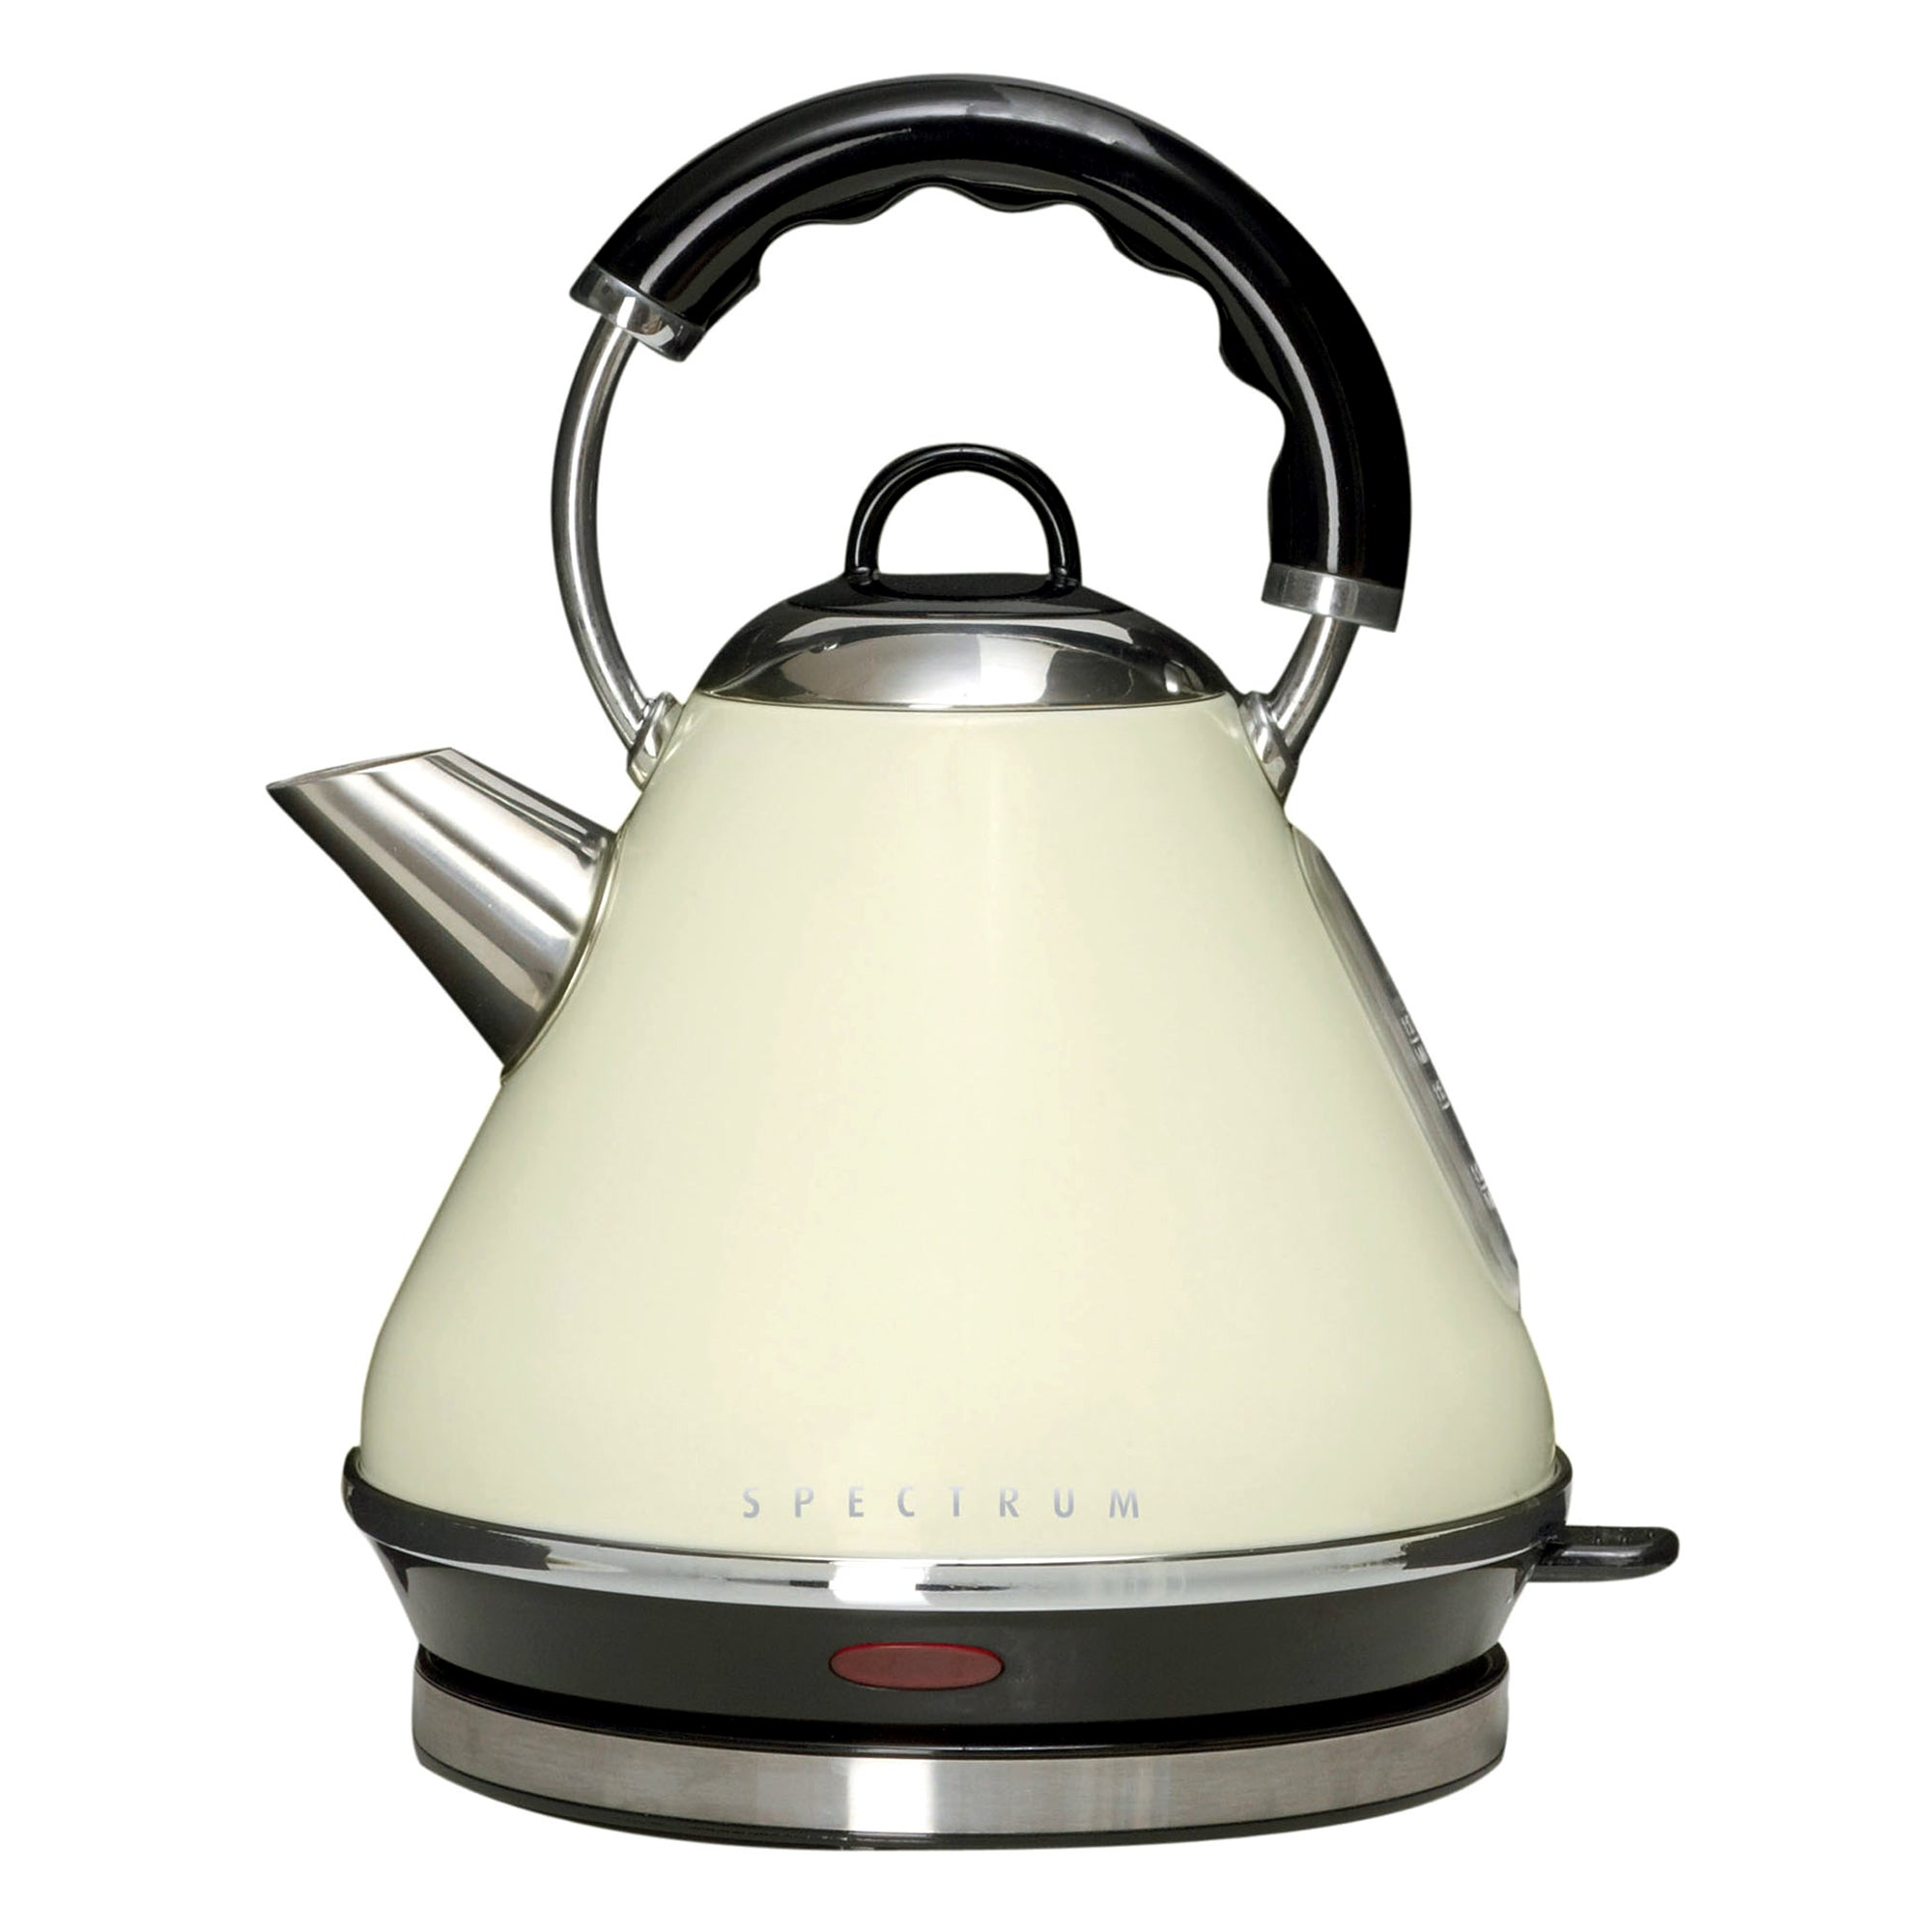 Cream Spectrum Pyramid Kettle